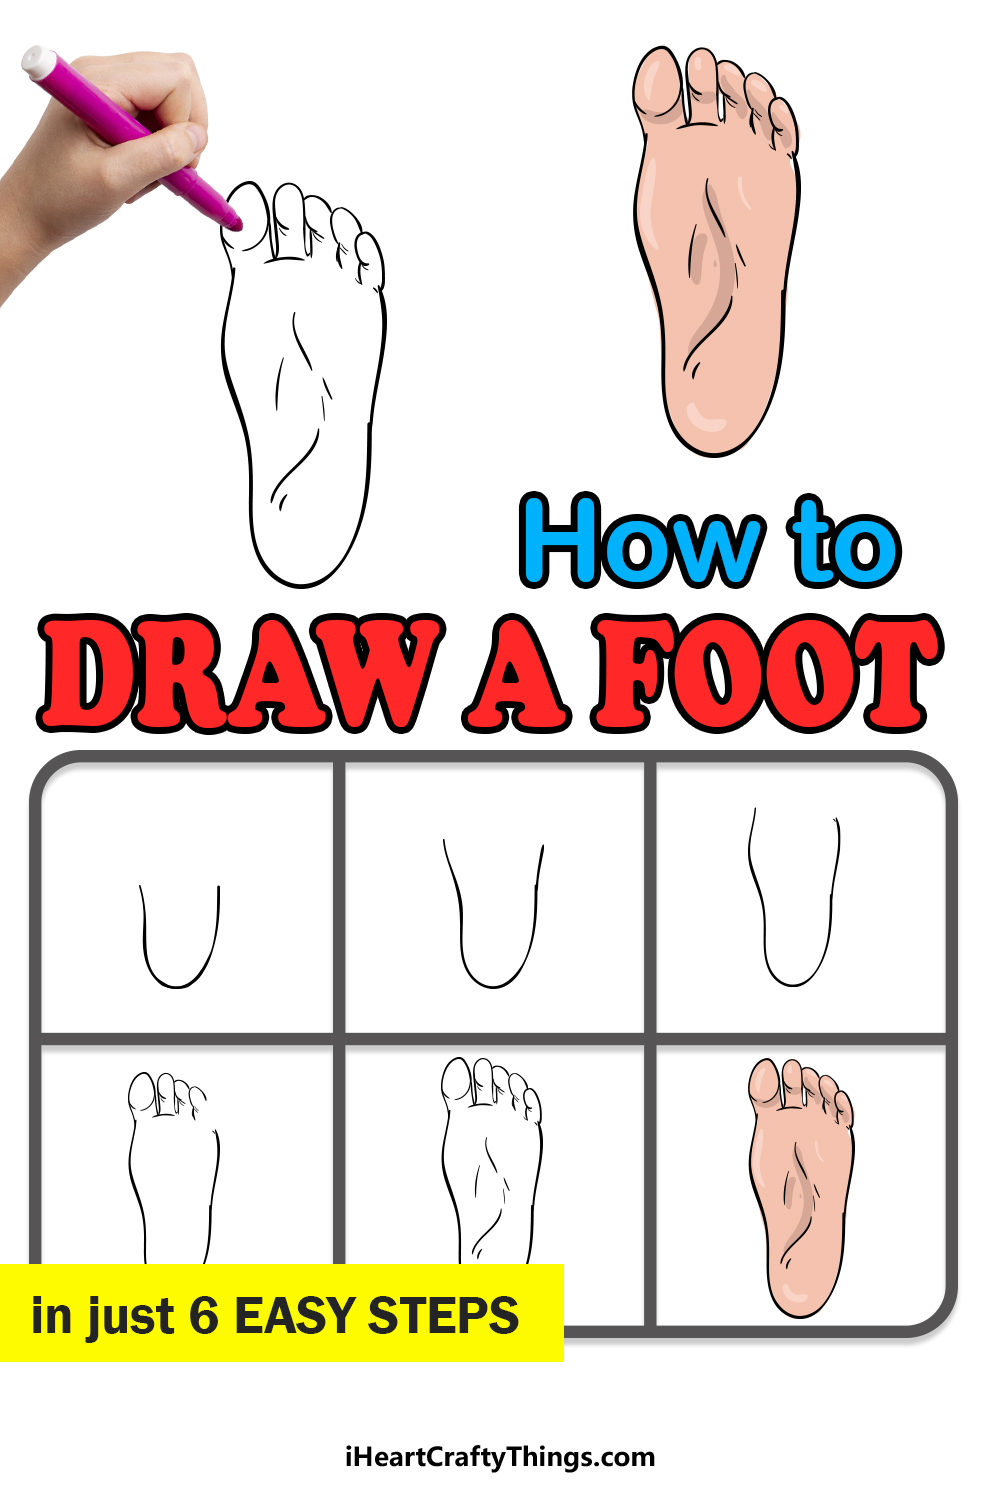 how to draw a foot in 6 easy steps